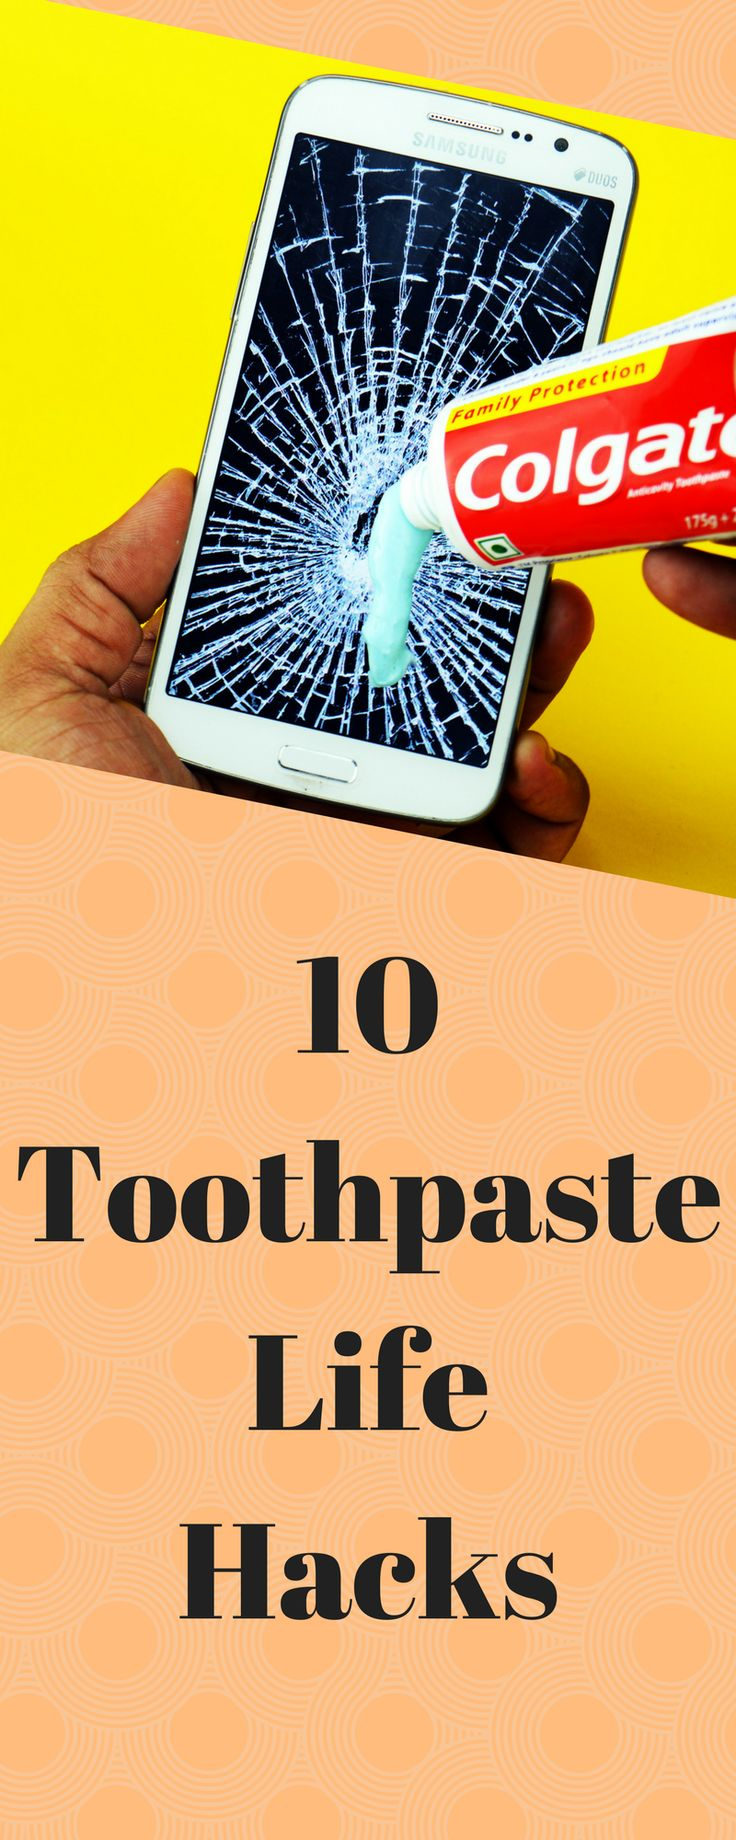 10 Home Cleaning Tricks Using Toothpaste toothpaste headlight cleaner toothpaste hacks How to Remove Scratches from iphone 8 Clean Home how to clean how to clean my house toothpaste Life Hacks cleaning toilet cleaning hacks cleaner cleaner cleaning tips hacks diy hacks of life hacks diy #home #lifehacks #diy #iphone8 #iphoneX #iphone10